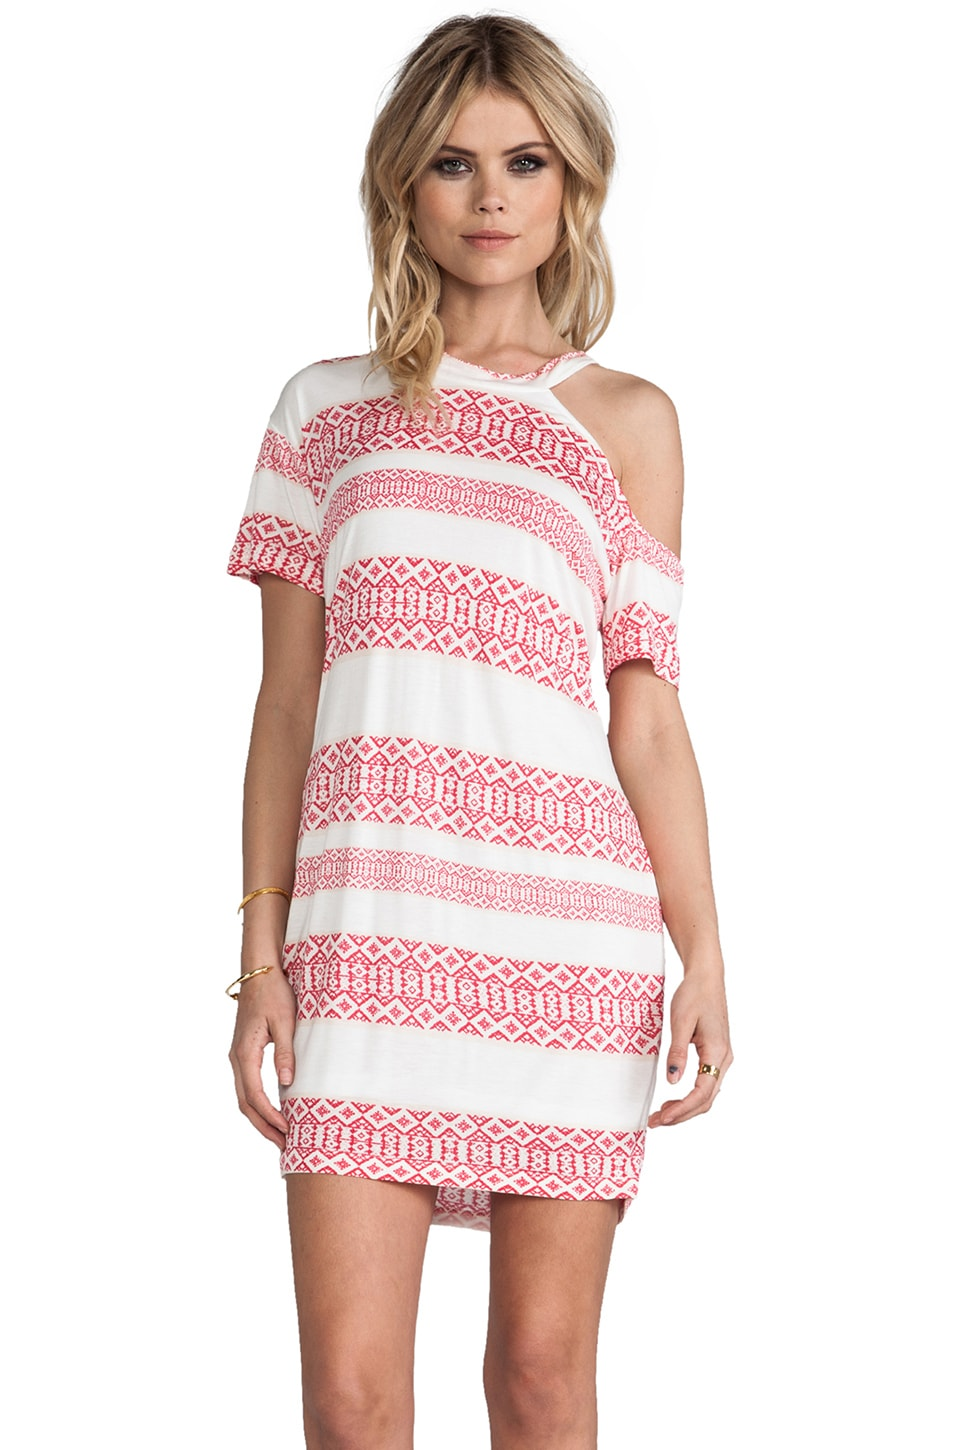 Pencey Standard One Shoulder Cut Out Dress in Afghani Stripe